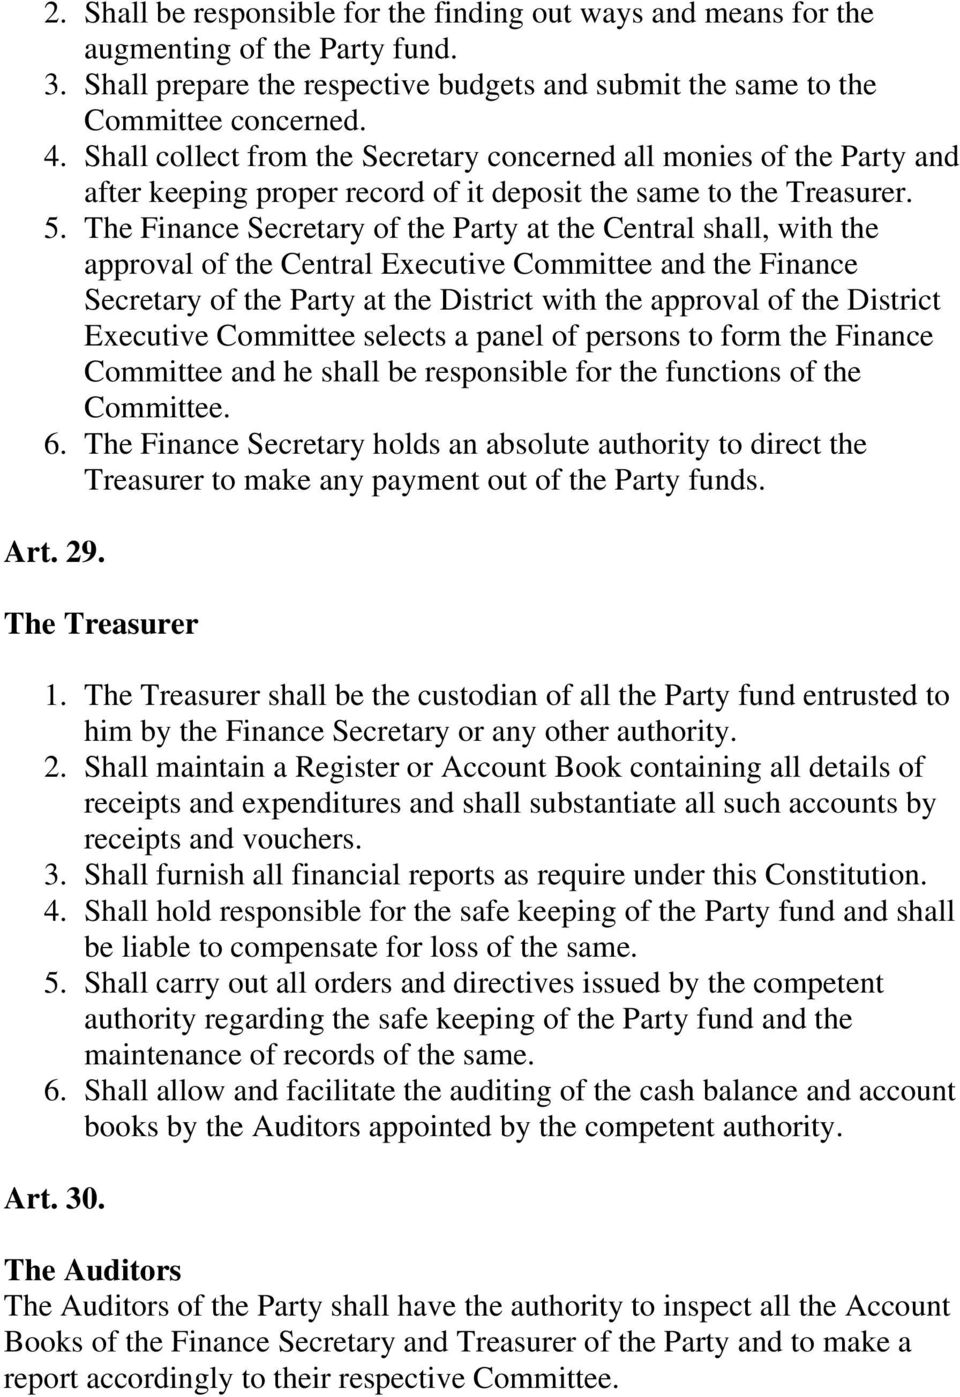 The Finance Secretary of the Party at the Central shall, with the approval of the Central Executive Committee and the Finance Secretary of the Party at the District with the approval of the District